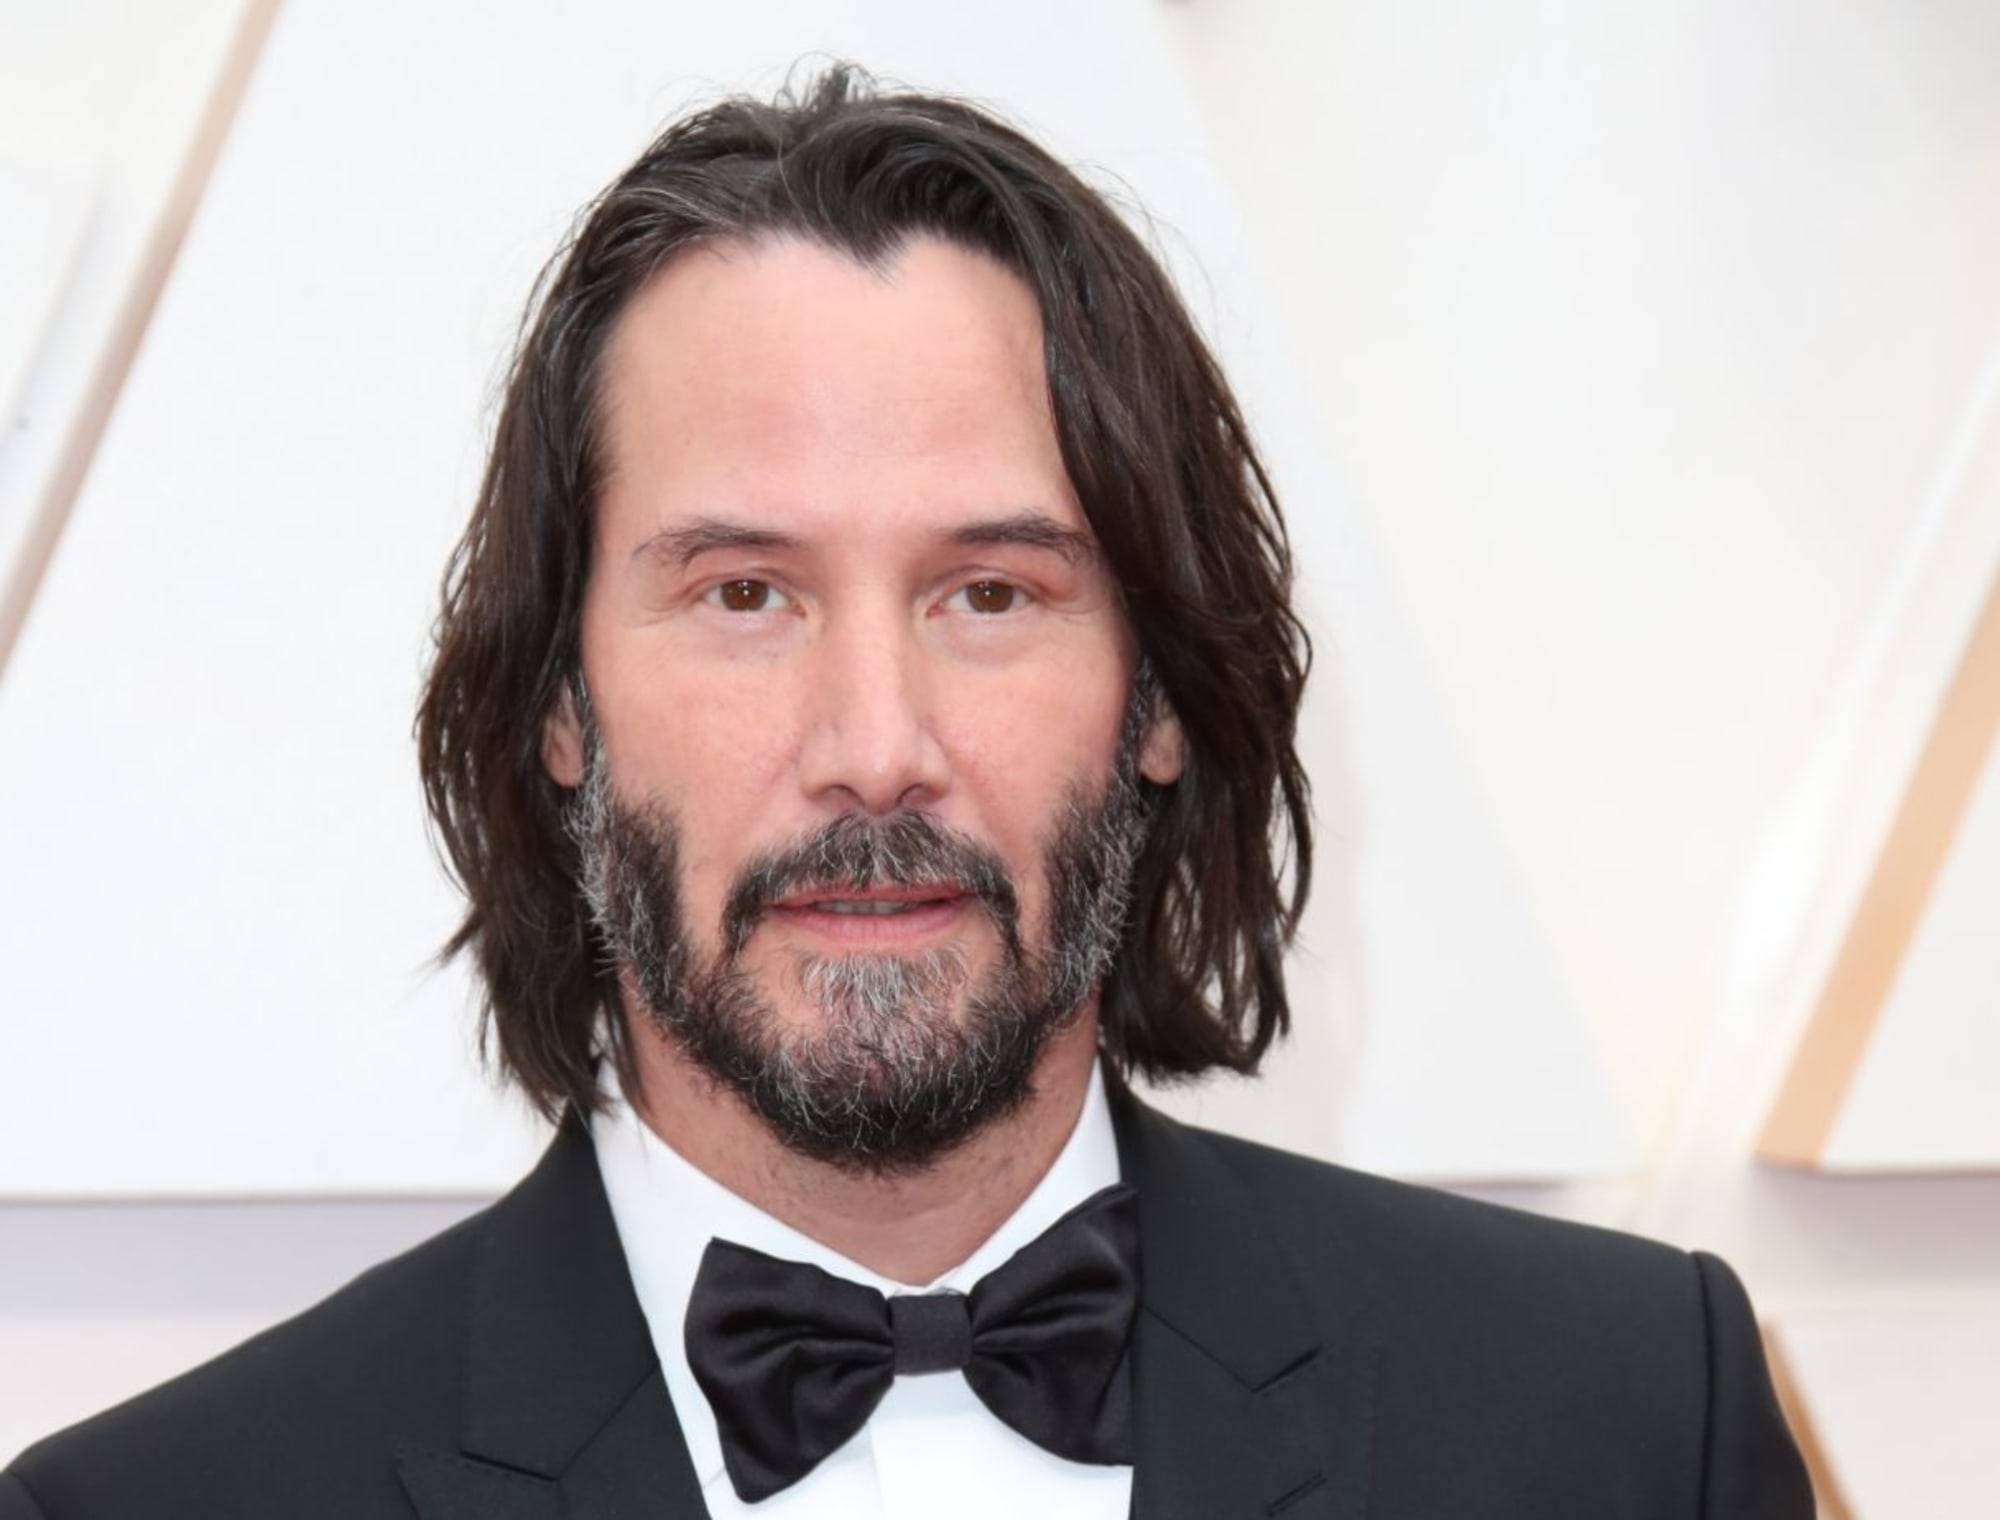 Keanu Reeves rumored to be joining Star Wars universe